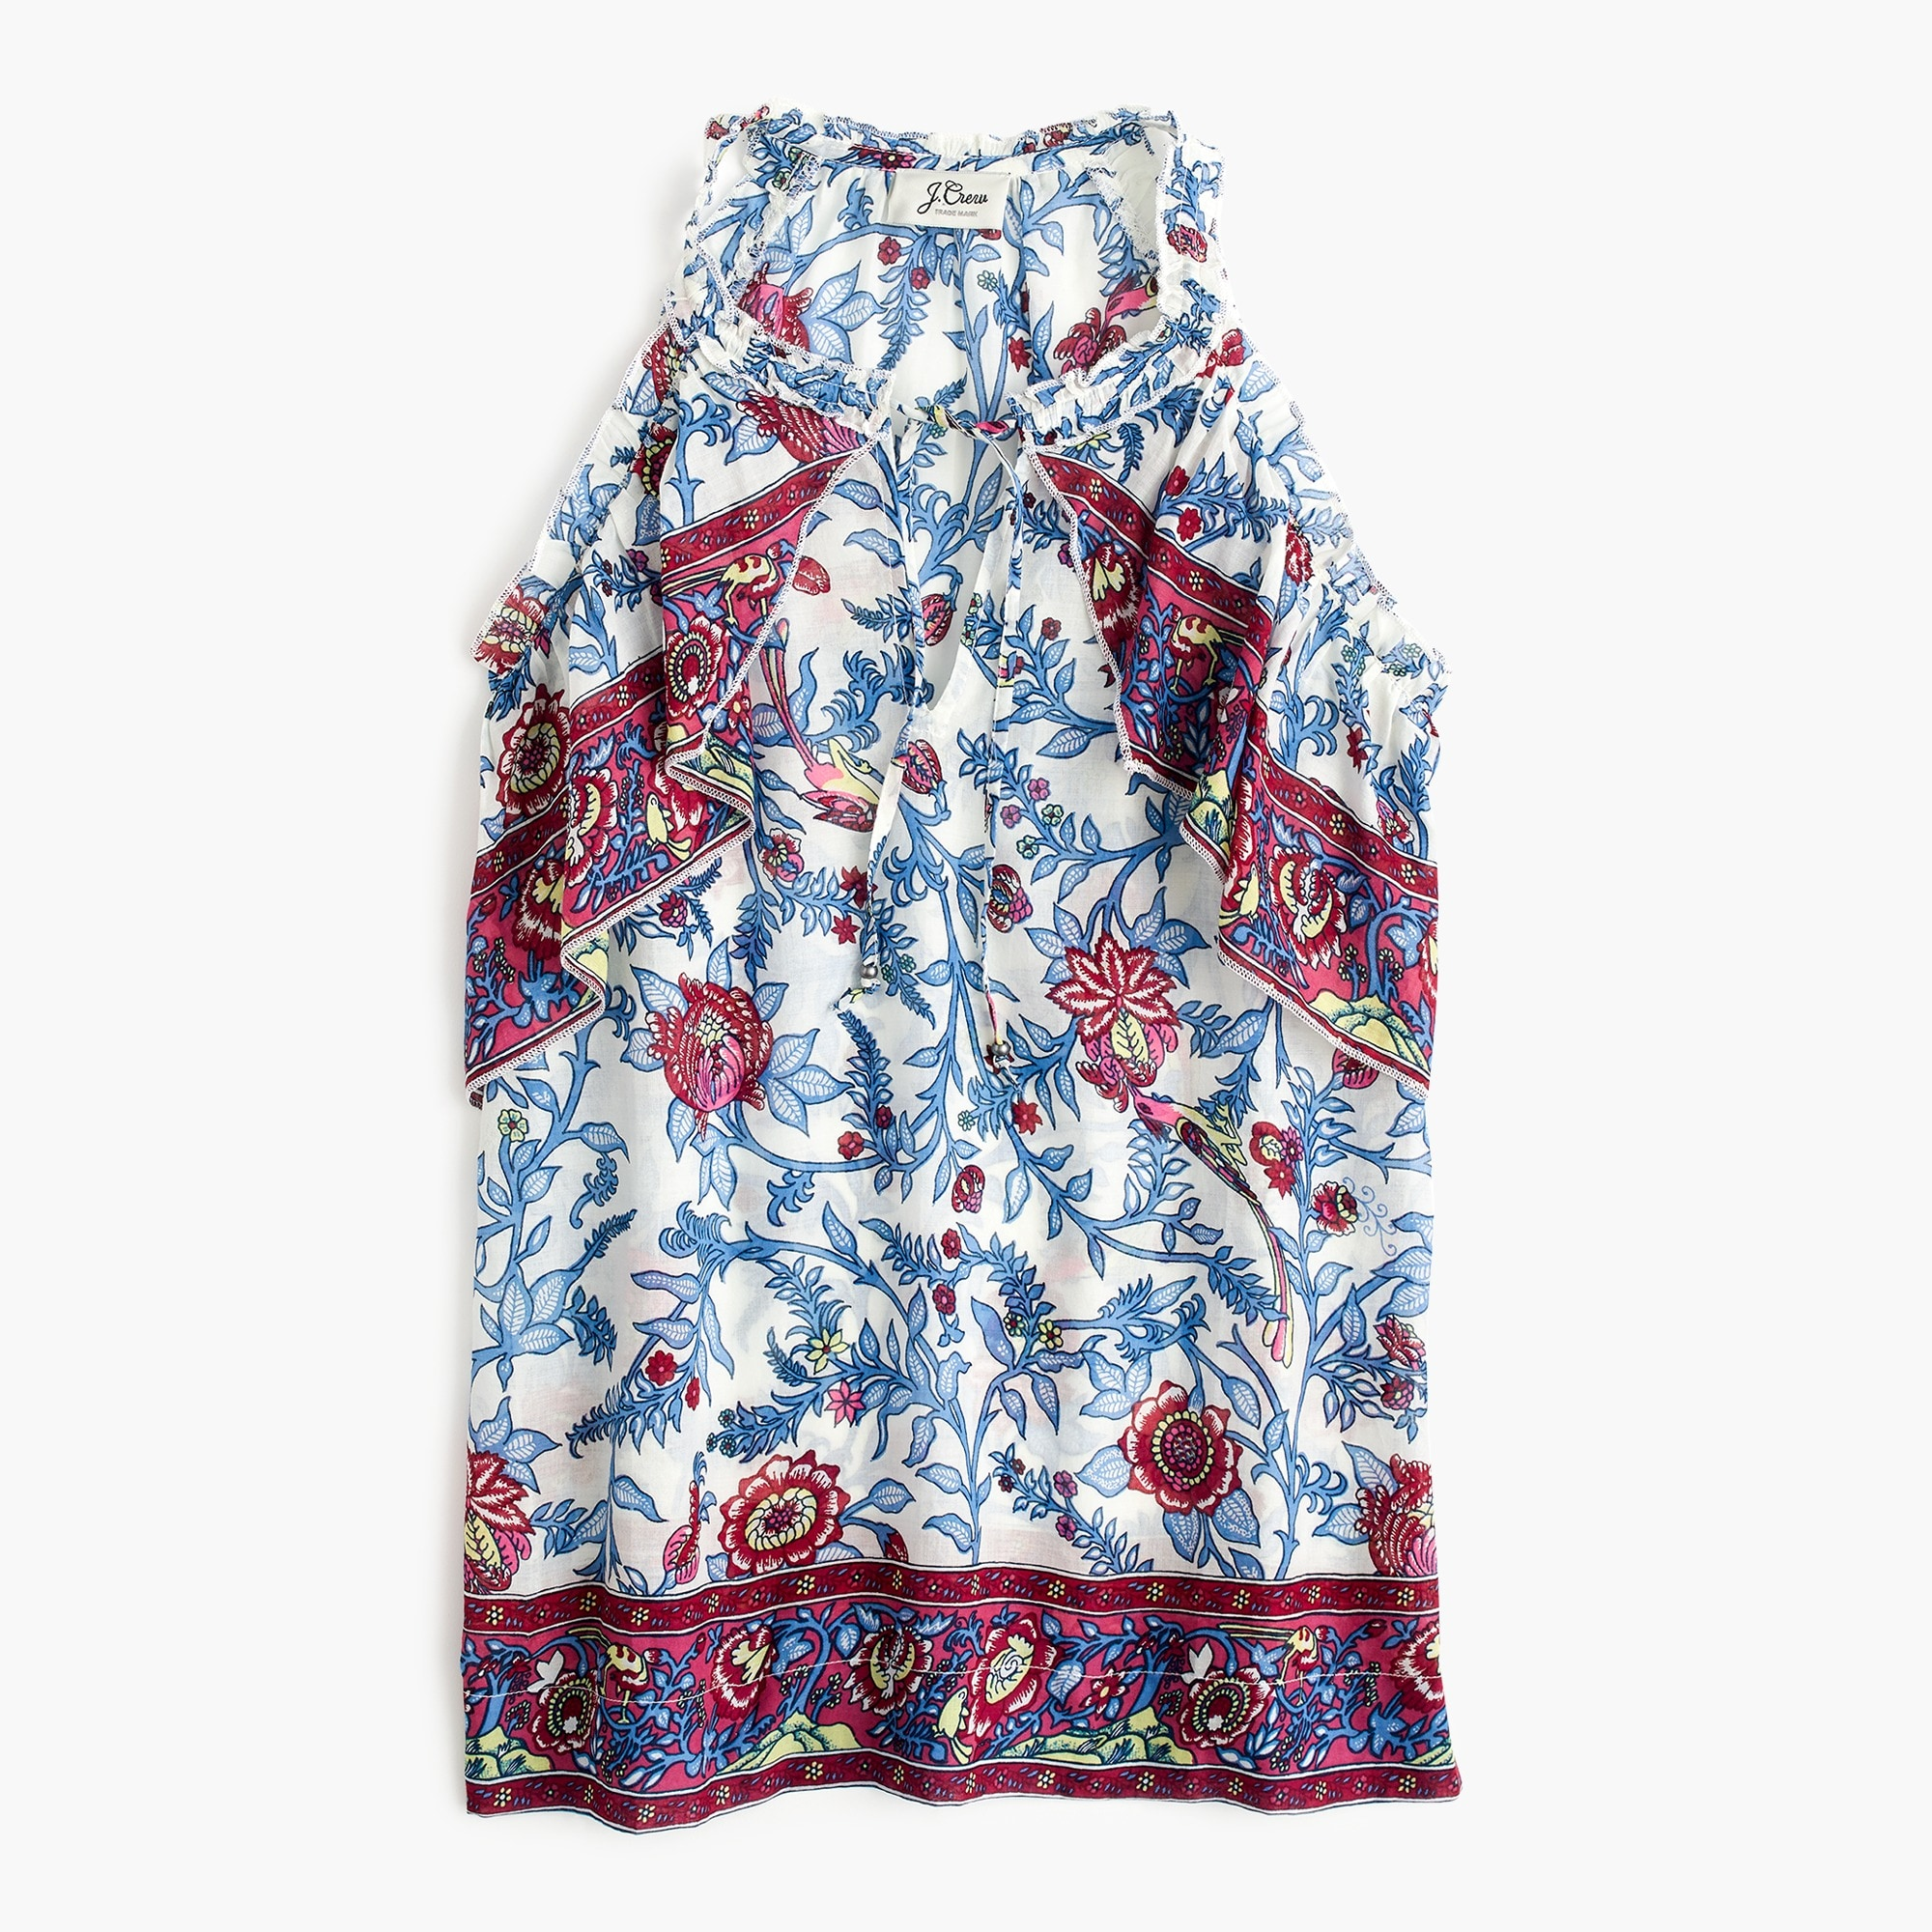 Image 2 for Tall Point Sur ruffle block print top